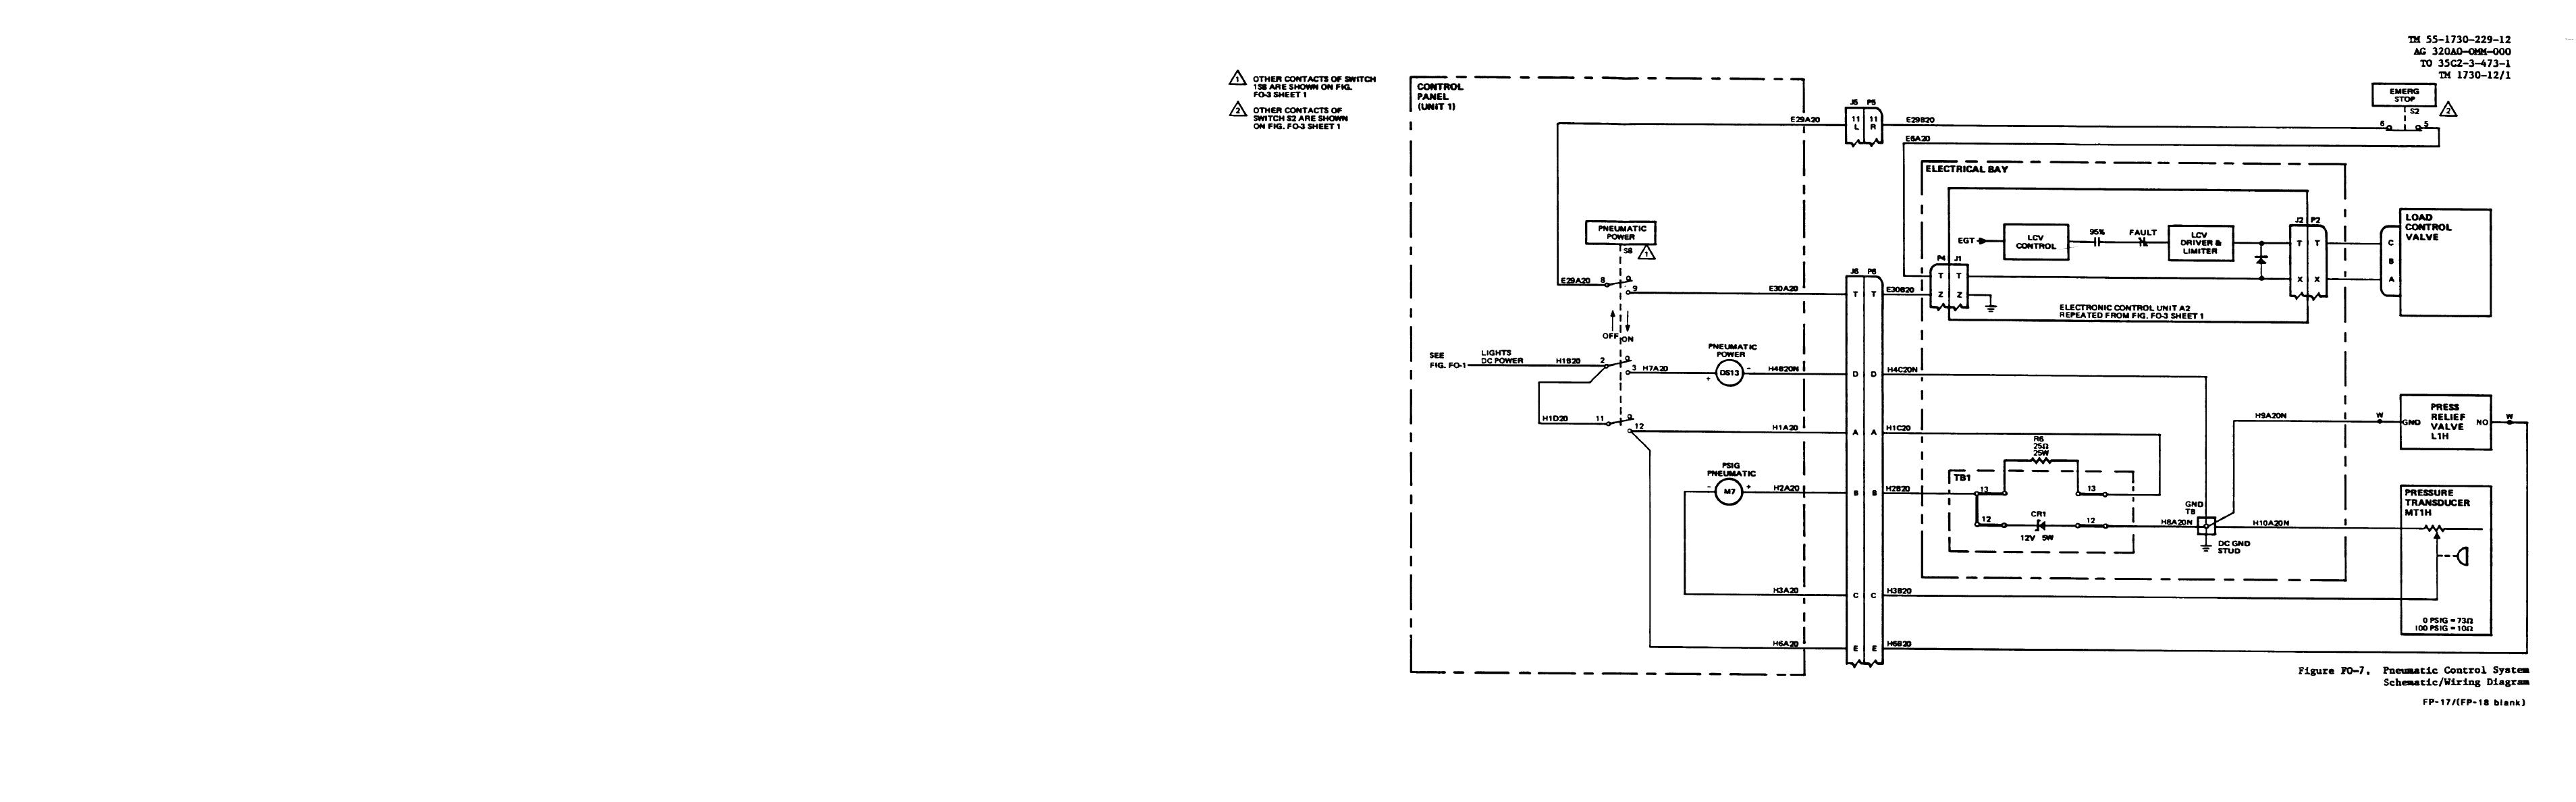 TM 55 1730 229 120550im figure fo 7 pneumatic control system schematic wiring diagram wiring diagram for access control system at eliteediting.co